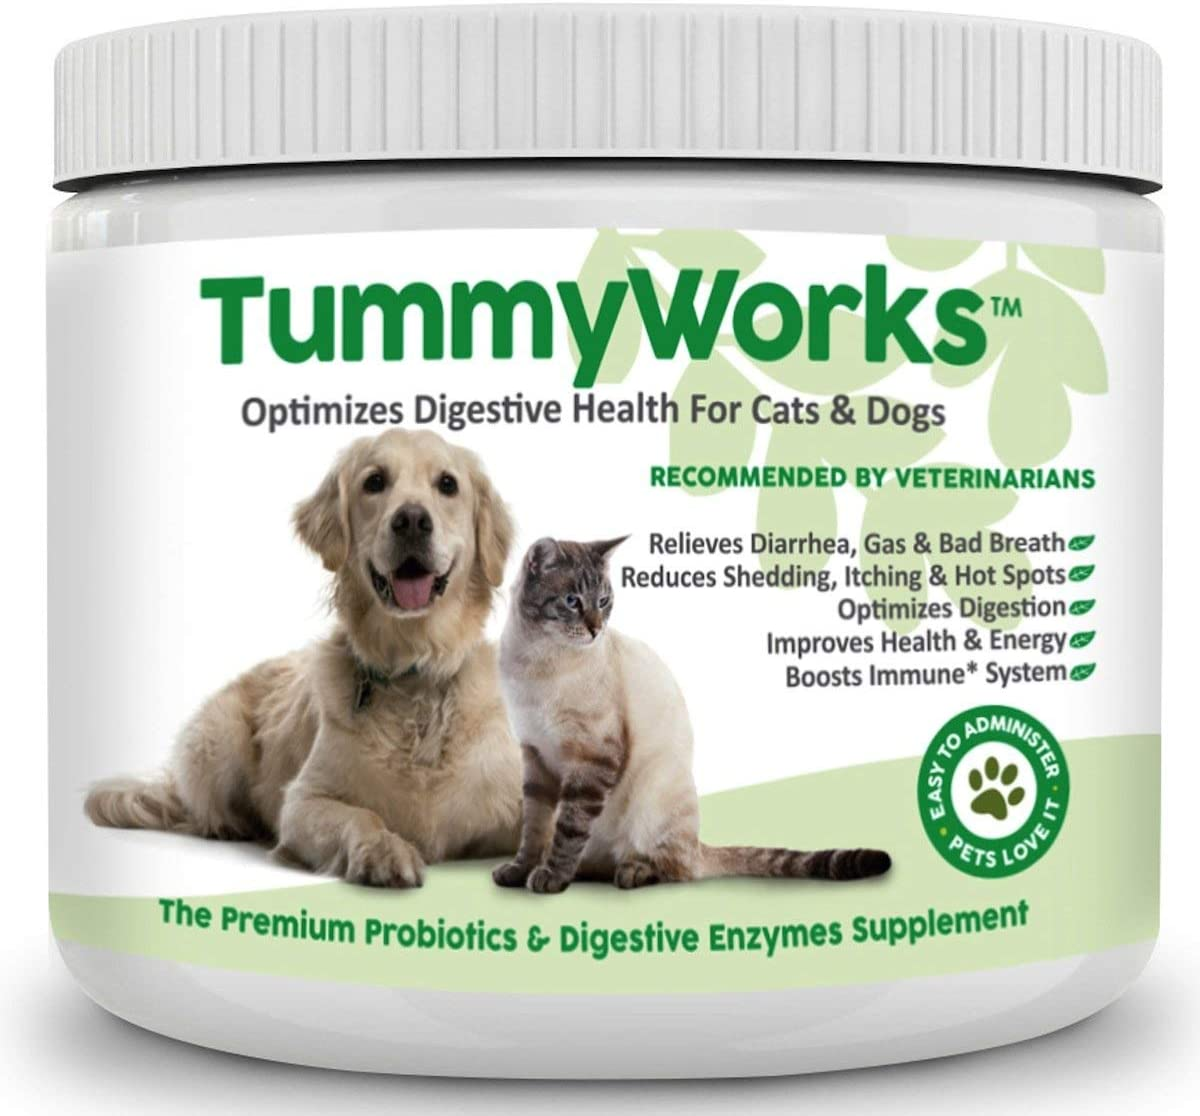 TummyWorks Probiotic Powder for Dogs Cats. Relieves Diarrhea, Upset Stomach, Gas, Constipation Bad Breath, Itching Yeast Infections. Digestive Enzymes Prebiotics. Made in USA